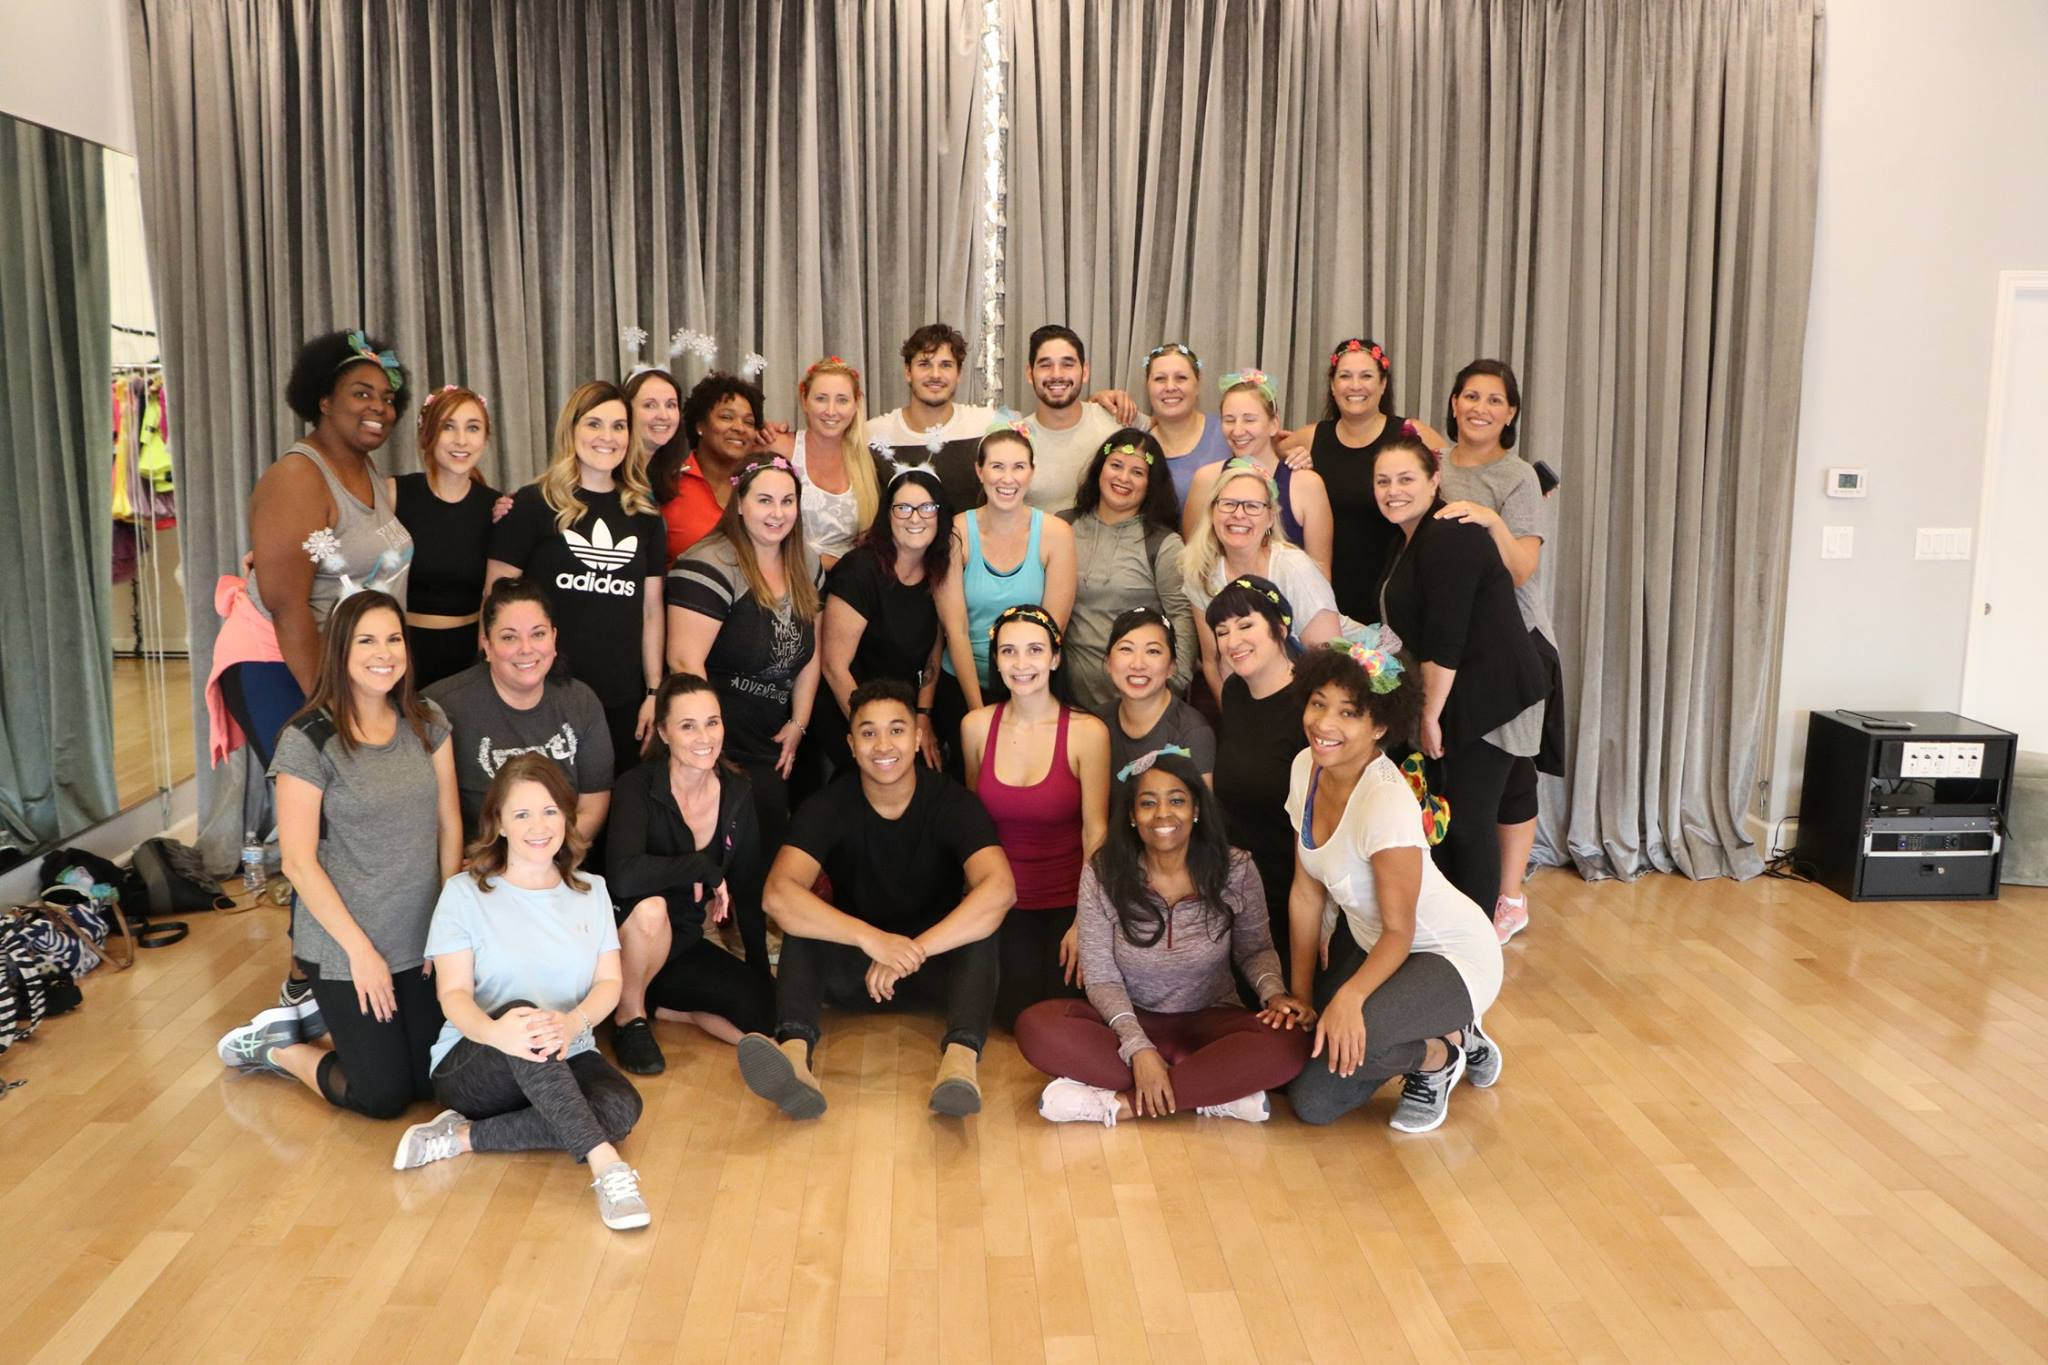 photo with Dancing With The Stars Pros